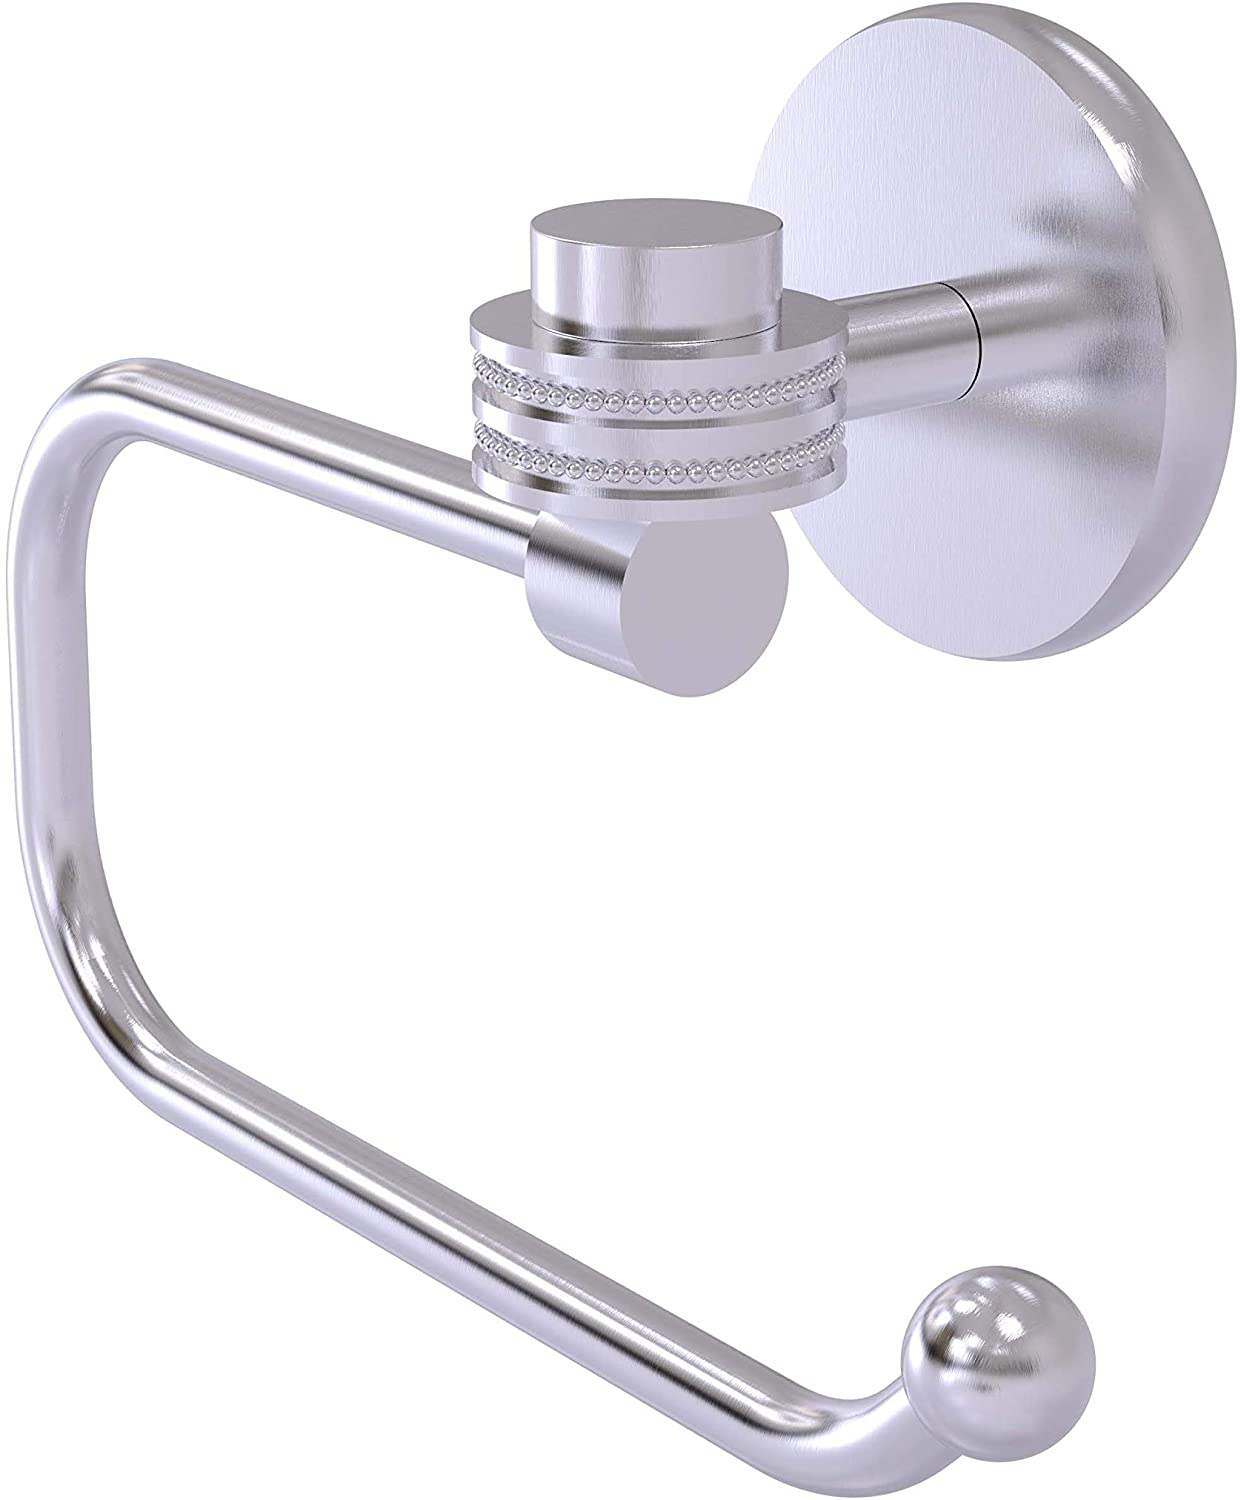 Allied Brass 7124ED-SCH Satellite Orbit One Collection Euro Style Tissue Dotted Accents Toilet Paper Holder, Satin Chrome